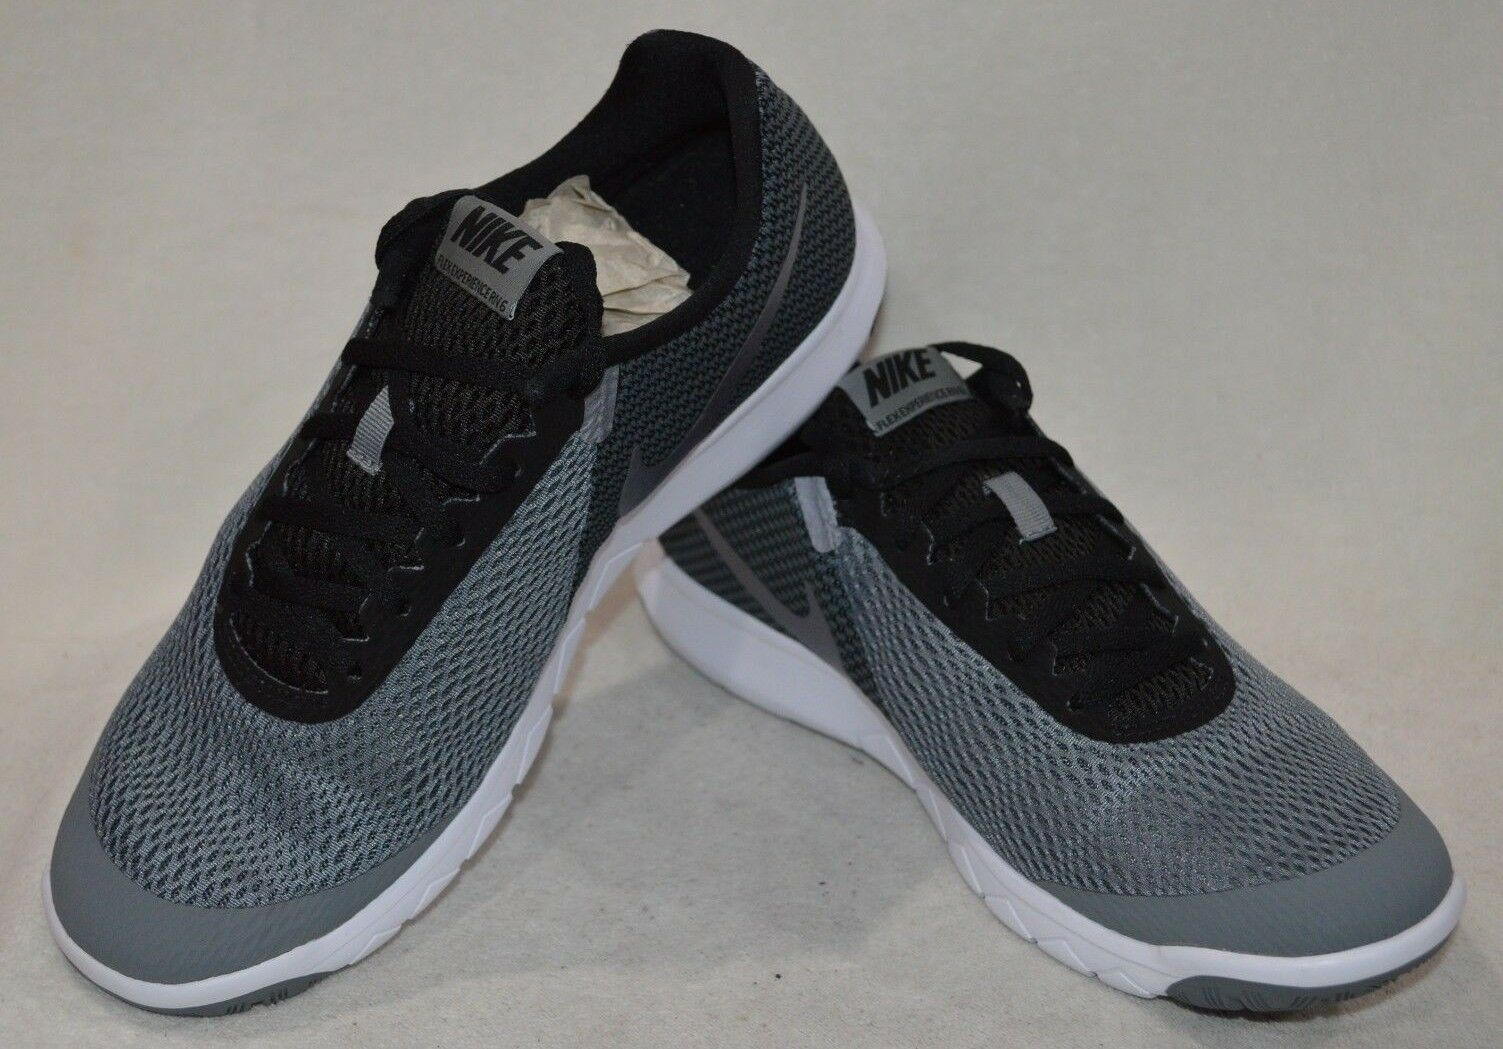 Nike Men's Flex Experience RN 6 Cool Grey Black Running shoes-Assorted Sizes NWB